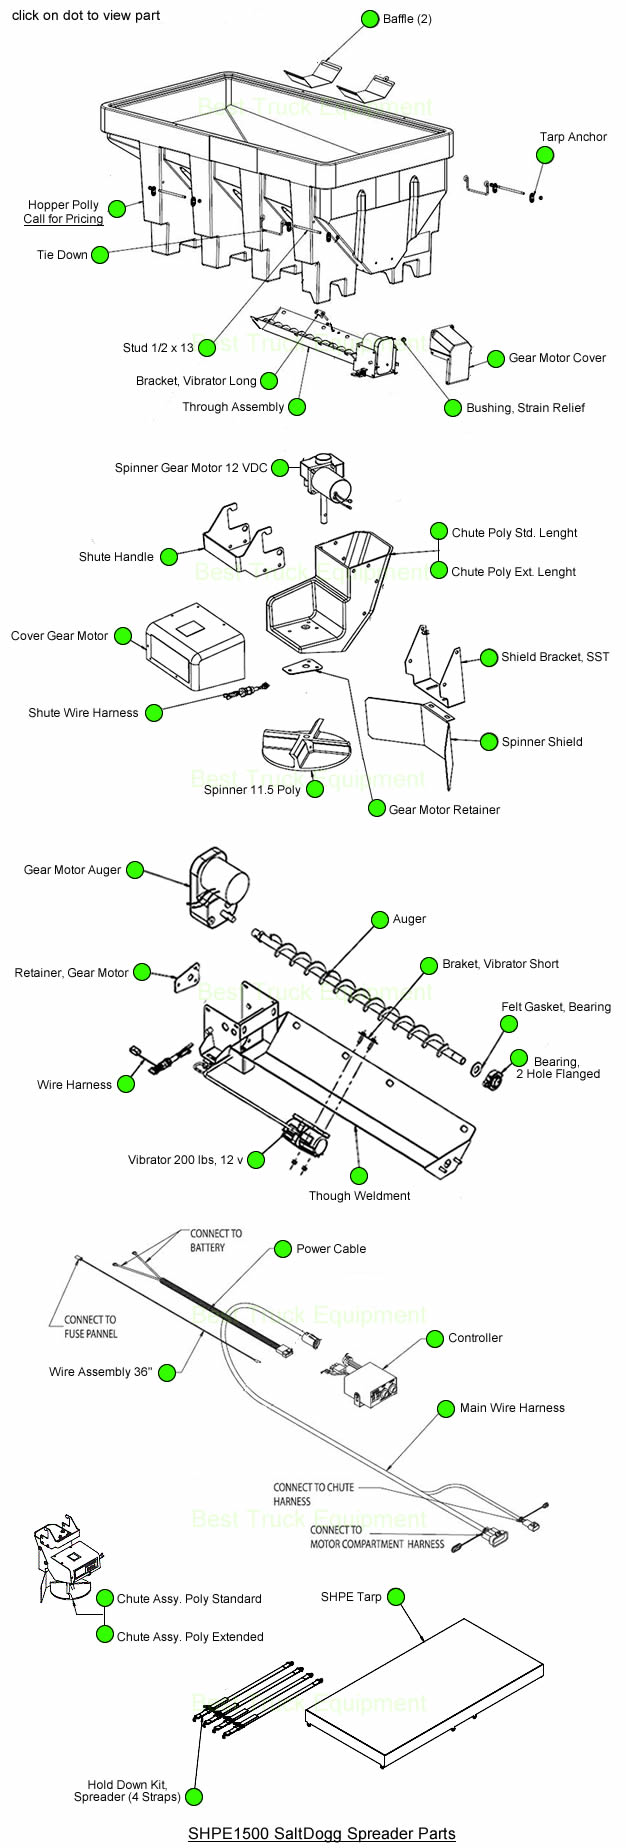 shpe2000 saltdogg shpe2000 buyers salt spreader parts by part look up diagram buyers salt spreader controller wiring diagram at soozxer.org